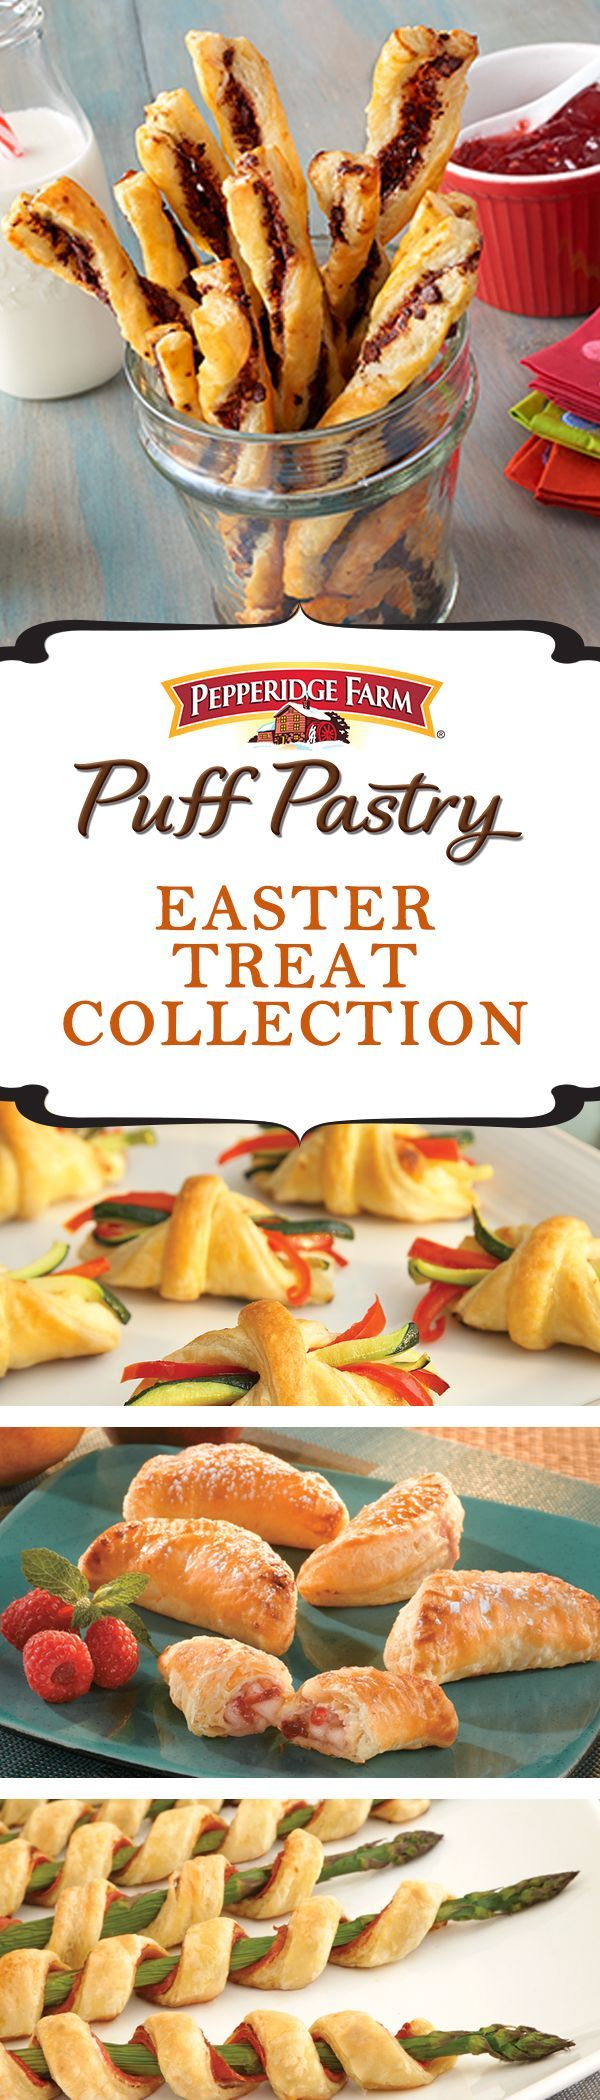 Photo of Puff Pastry Easter Treat Recipe Collection. Featuring recipes like Broccoli and …